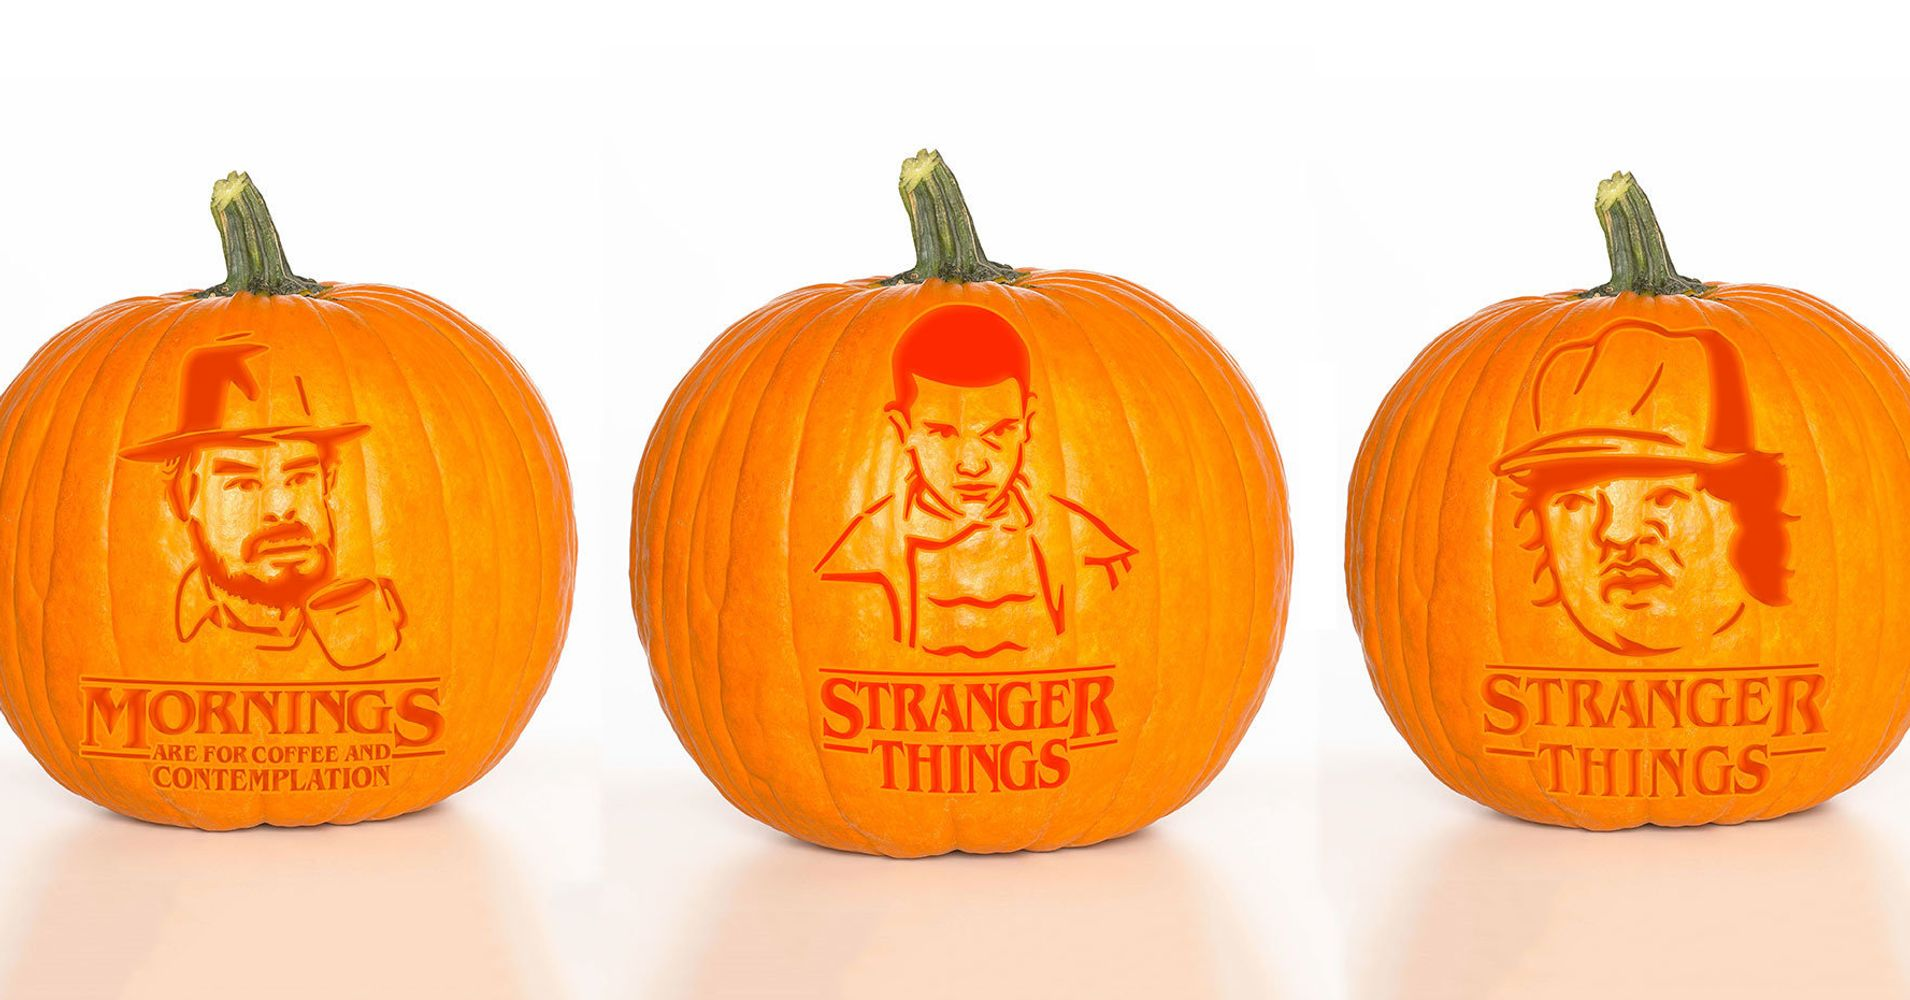 These 4 Stranger Things Pumpkin Carvings Will Mix Up Your